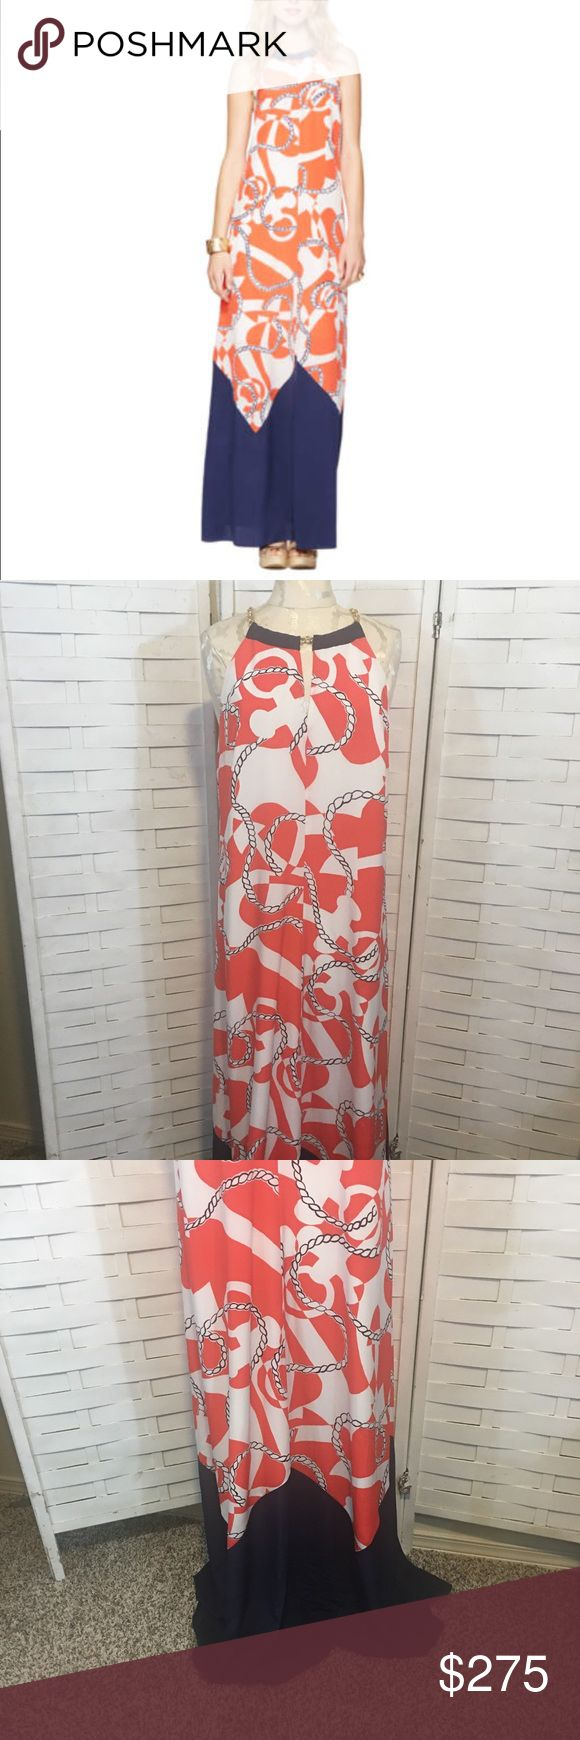 """NWT Lilly Pulitzer booze cruise dress N.532 New with tags attached Winnie style maxi dress! The name of the print is """"booze cruise"""". No flaws! This dress is beautiful! 100% silk! It has a fun link chain for the straps, it's fully lined and has a hidden back zipper. Lilly Pulitzer Dresses Maxi"""